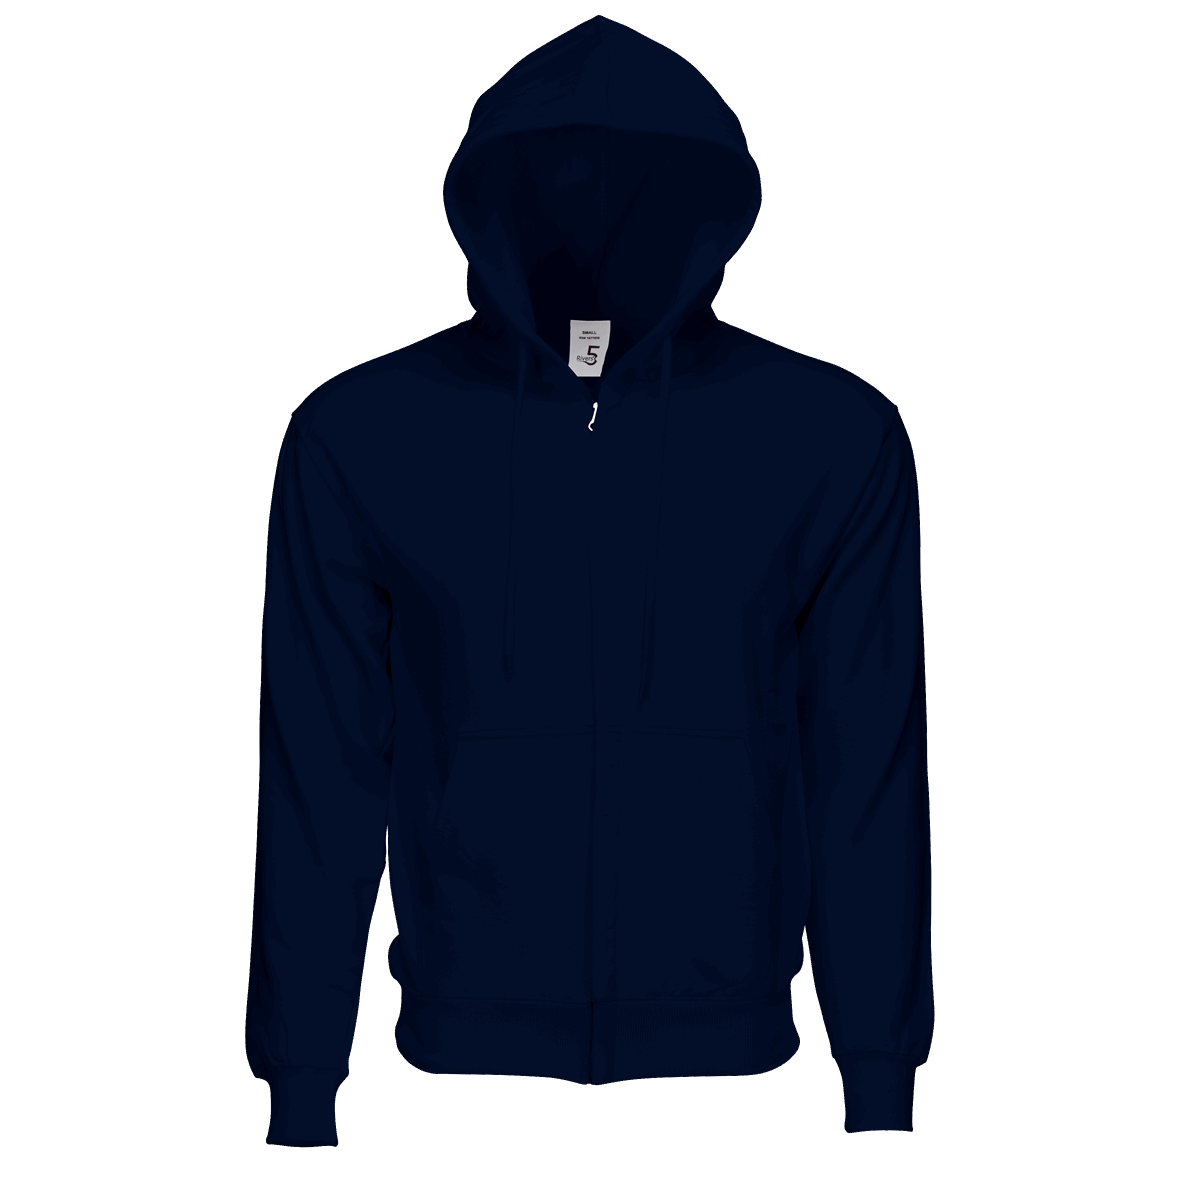 Fleece Zipper Navy Blue